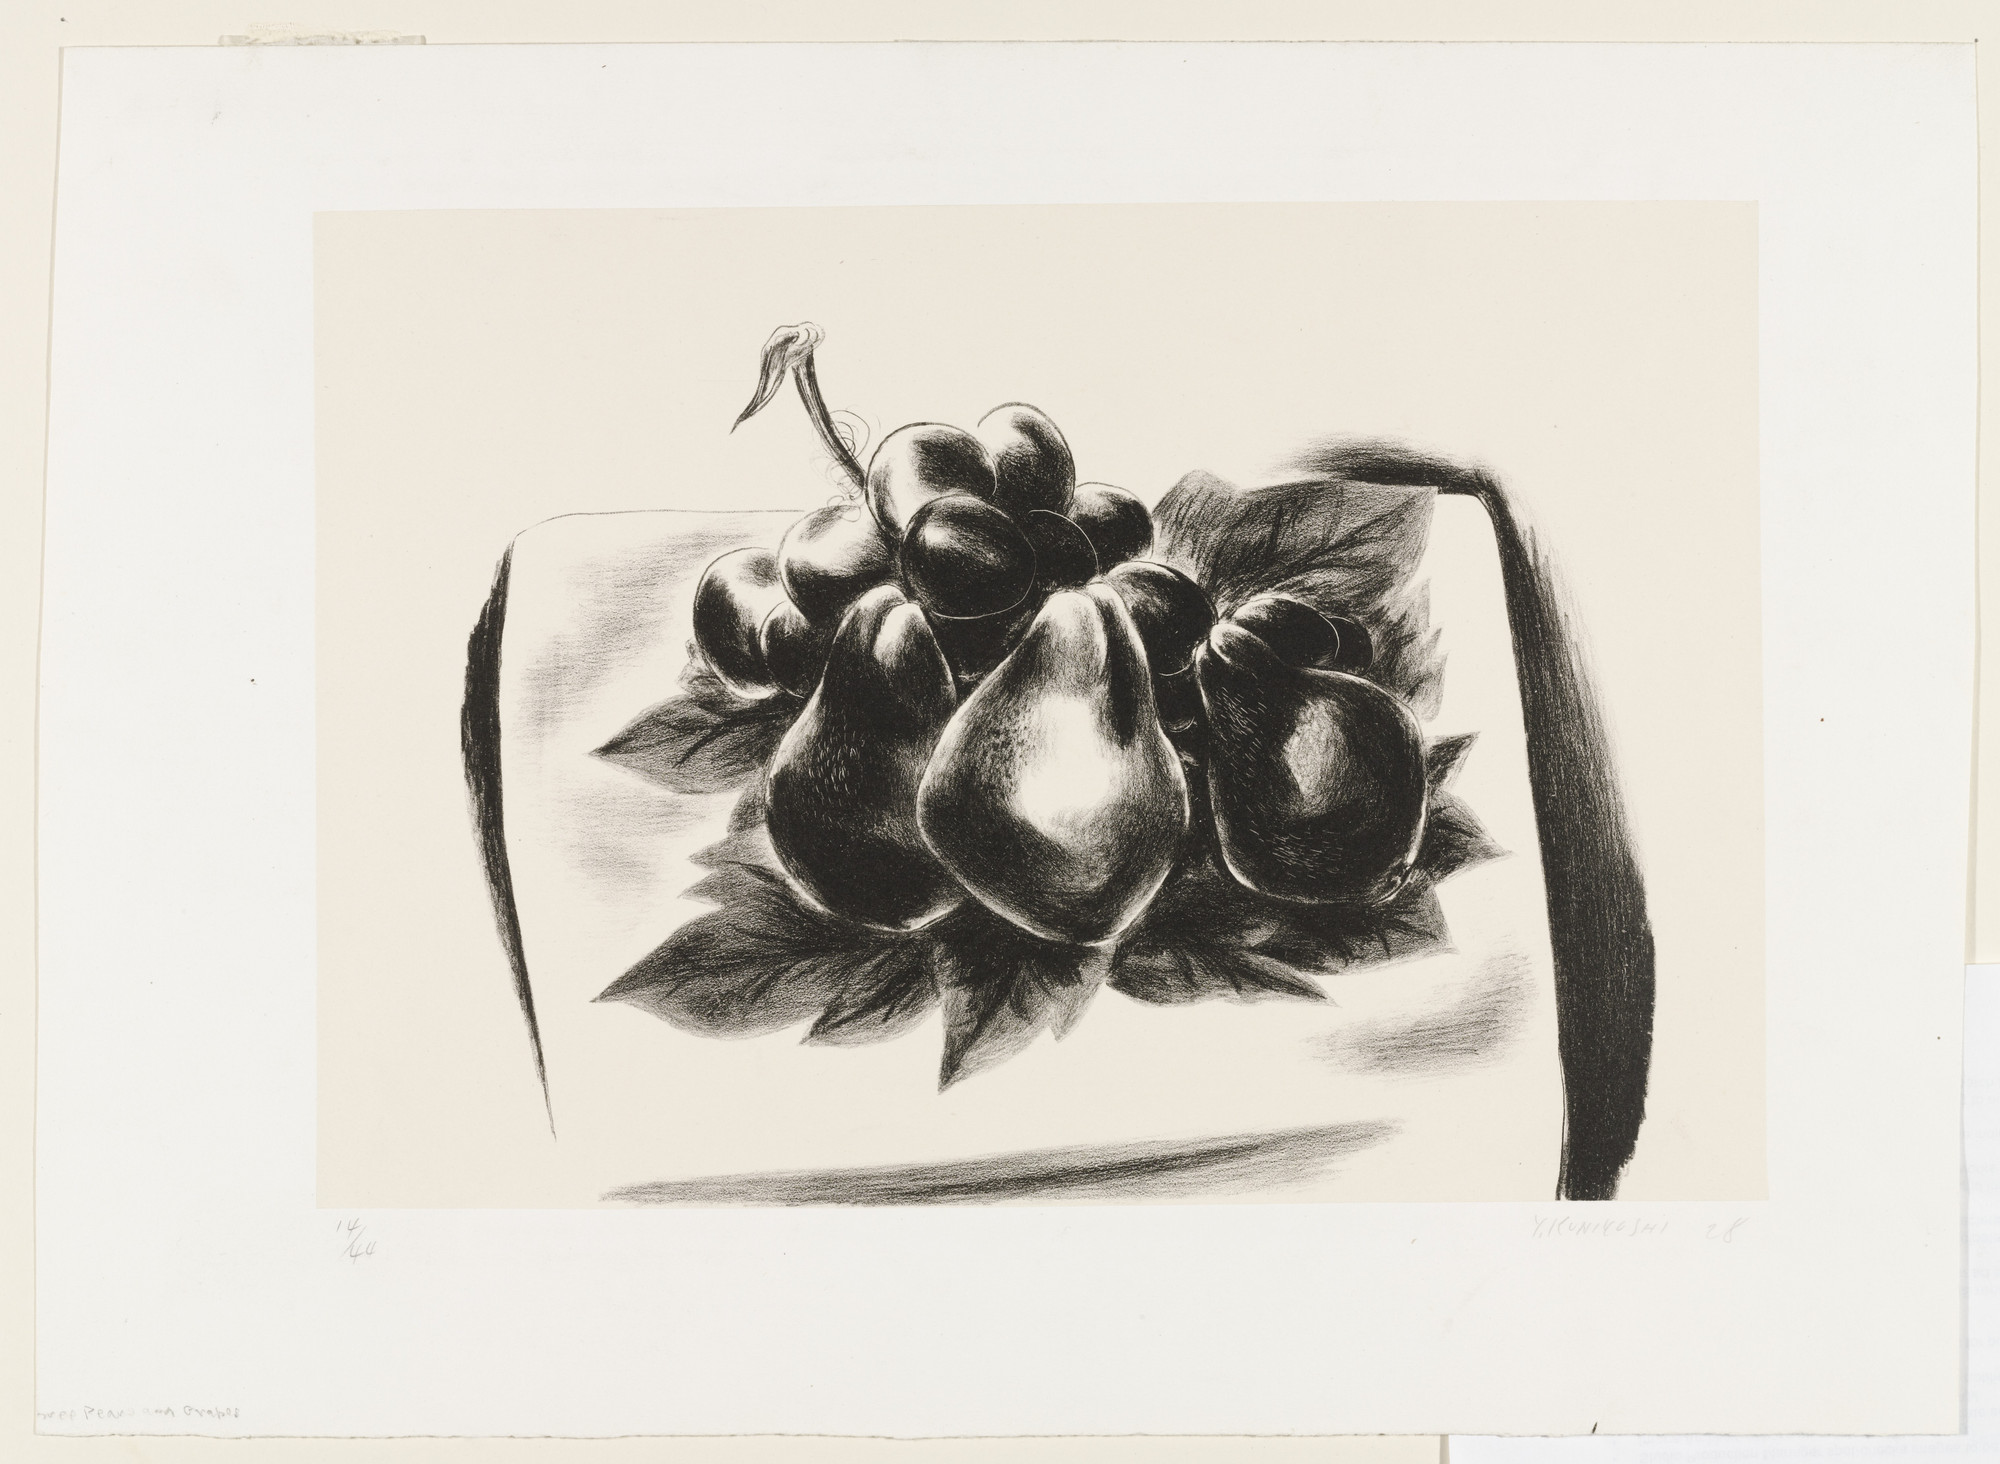 Yasuo Kuniyoshi. Pears and Grapes - (Three Pears and Grapes). 1928